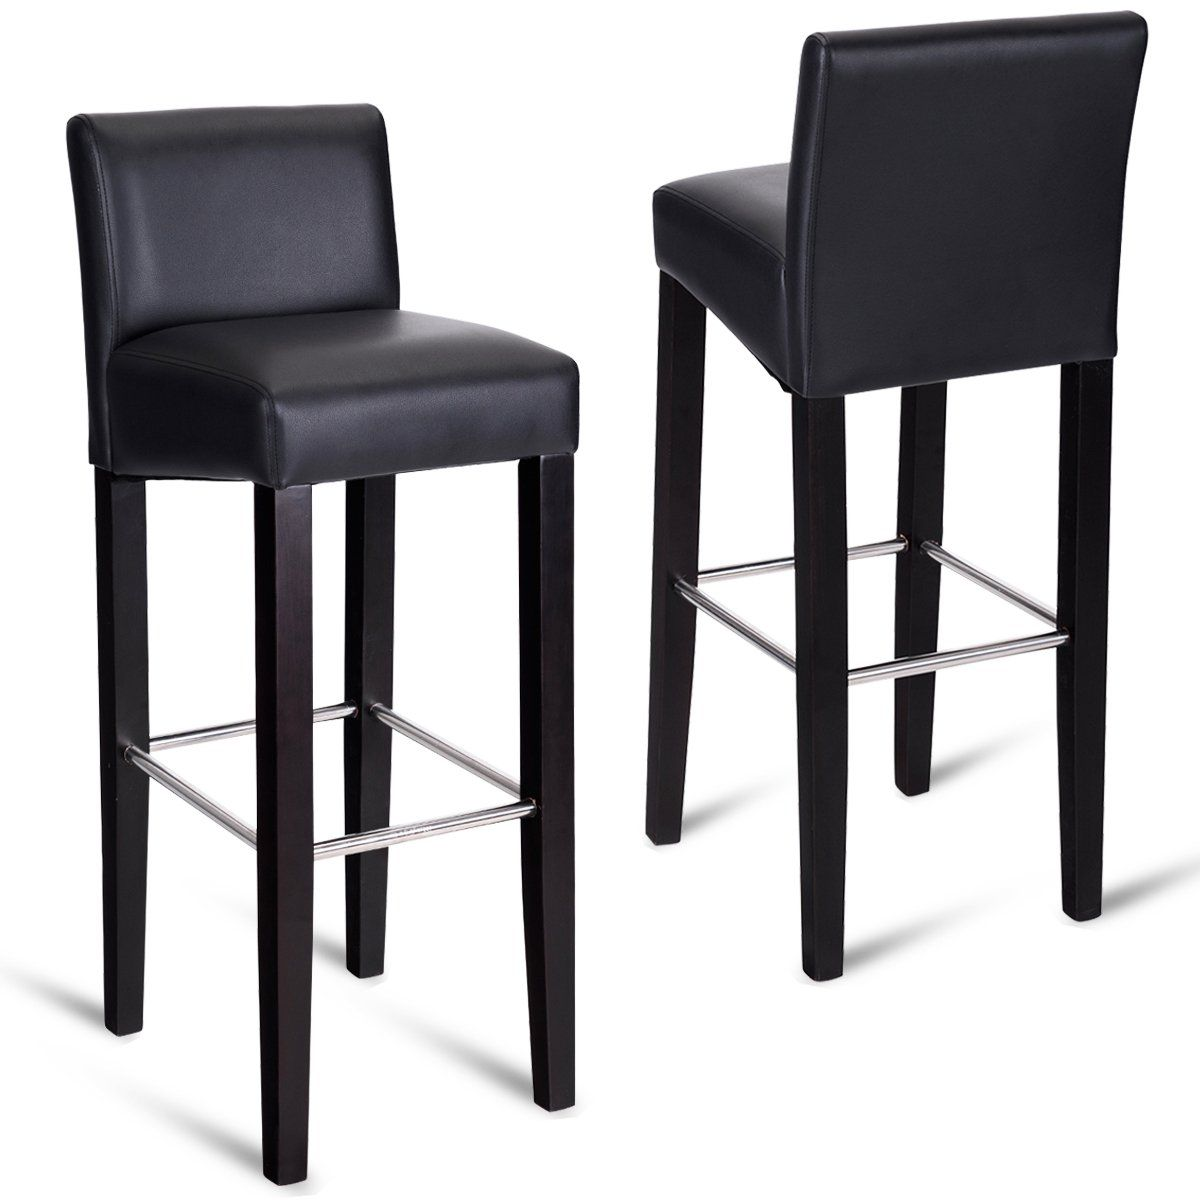 Set Of 2 Padded Seat Bar Stool Chair With Solid Wood Legs Black